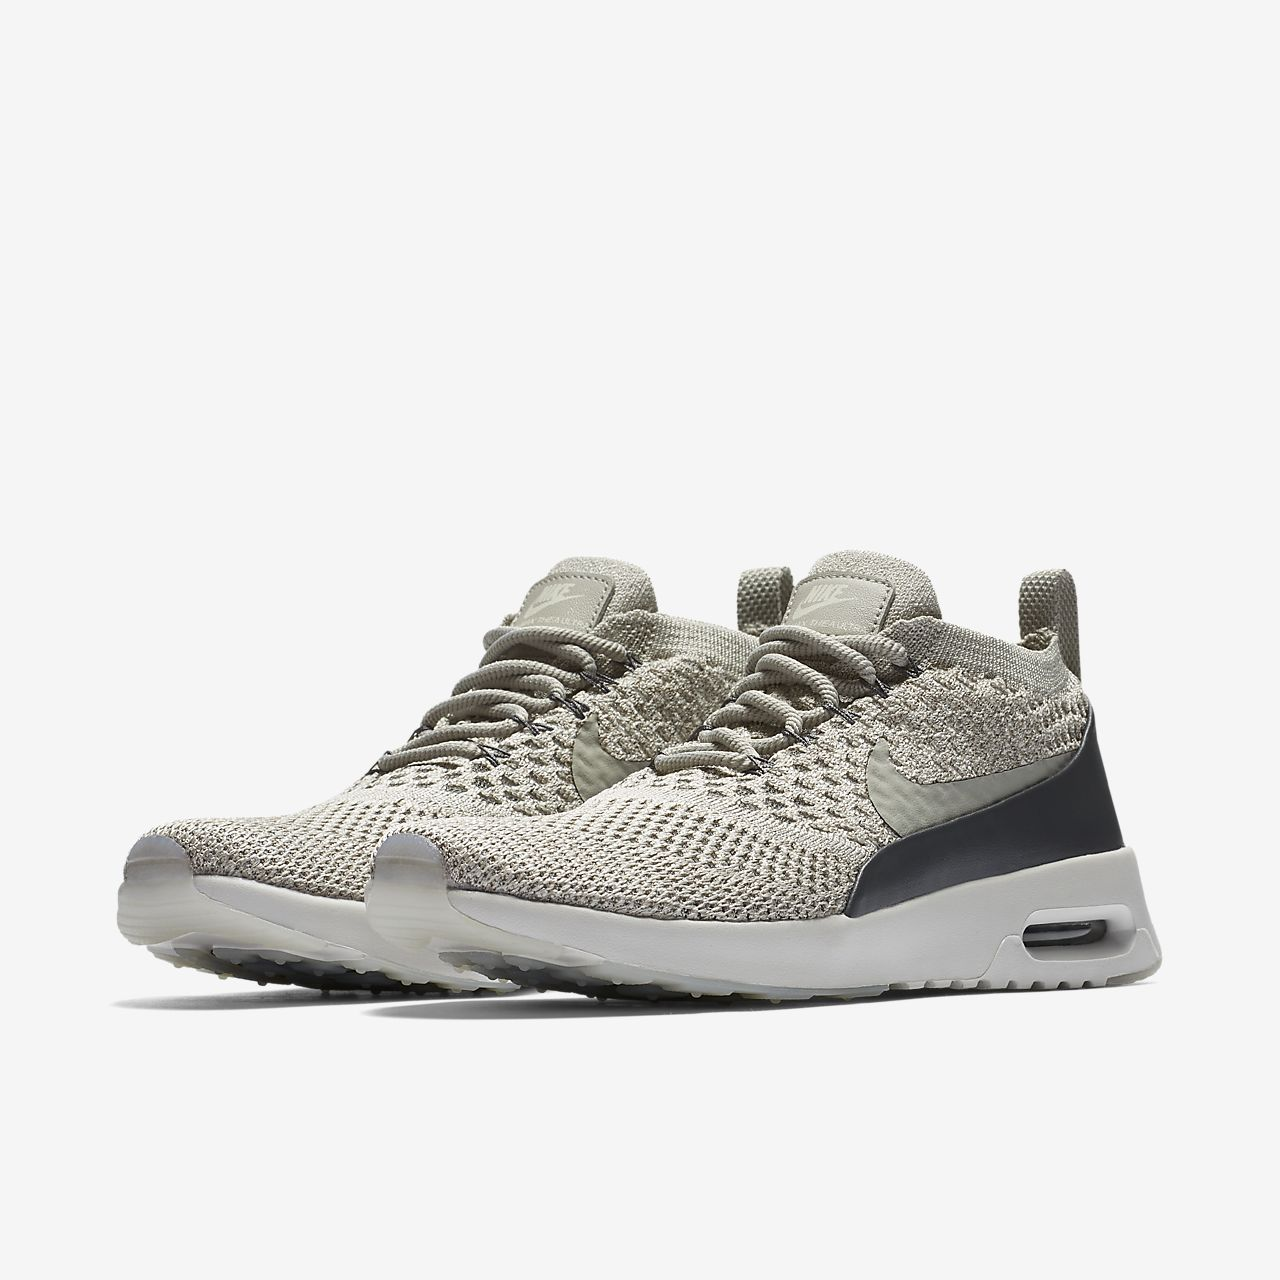 ... Chaussure Nike Air Max Thea Ultra Flyknit pour Femme